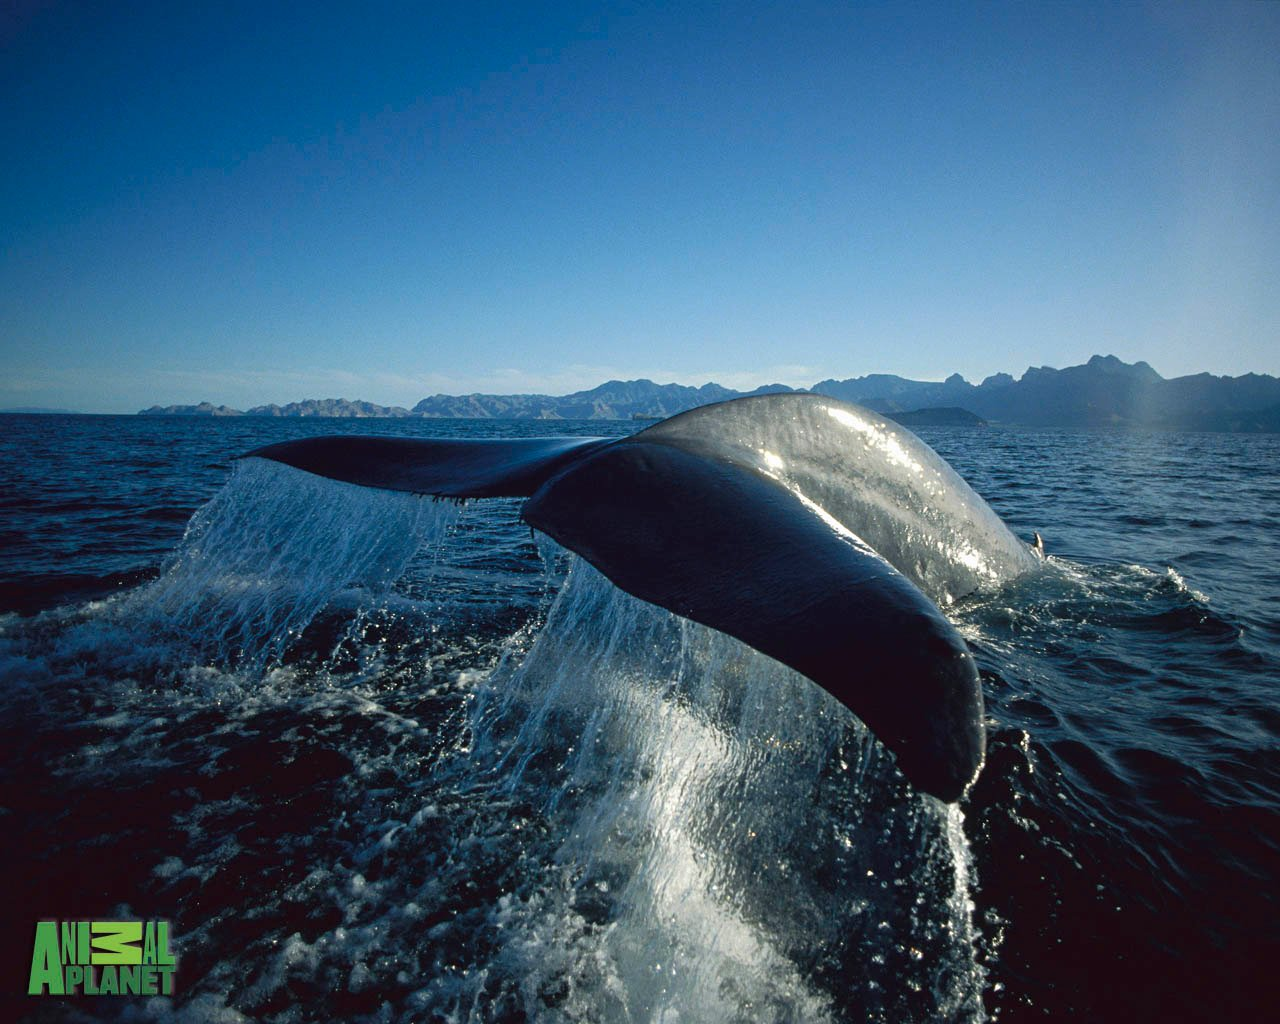 Animal Planet Wallpaper Download   blue whale 1280x1024